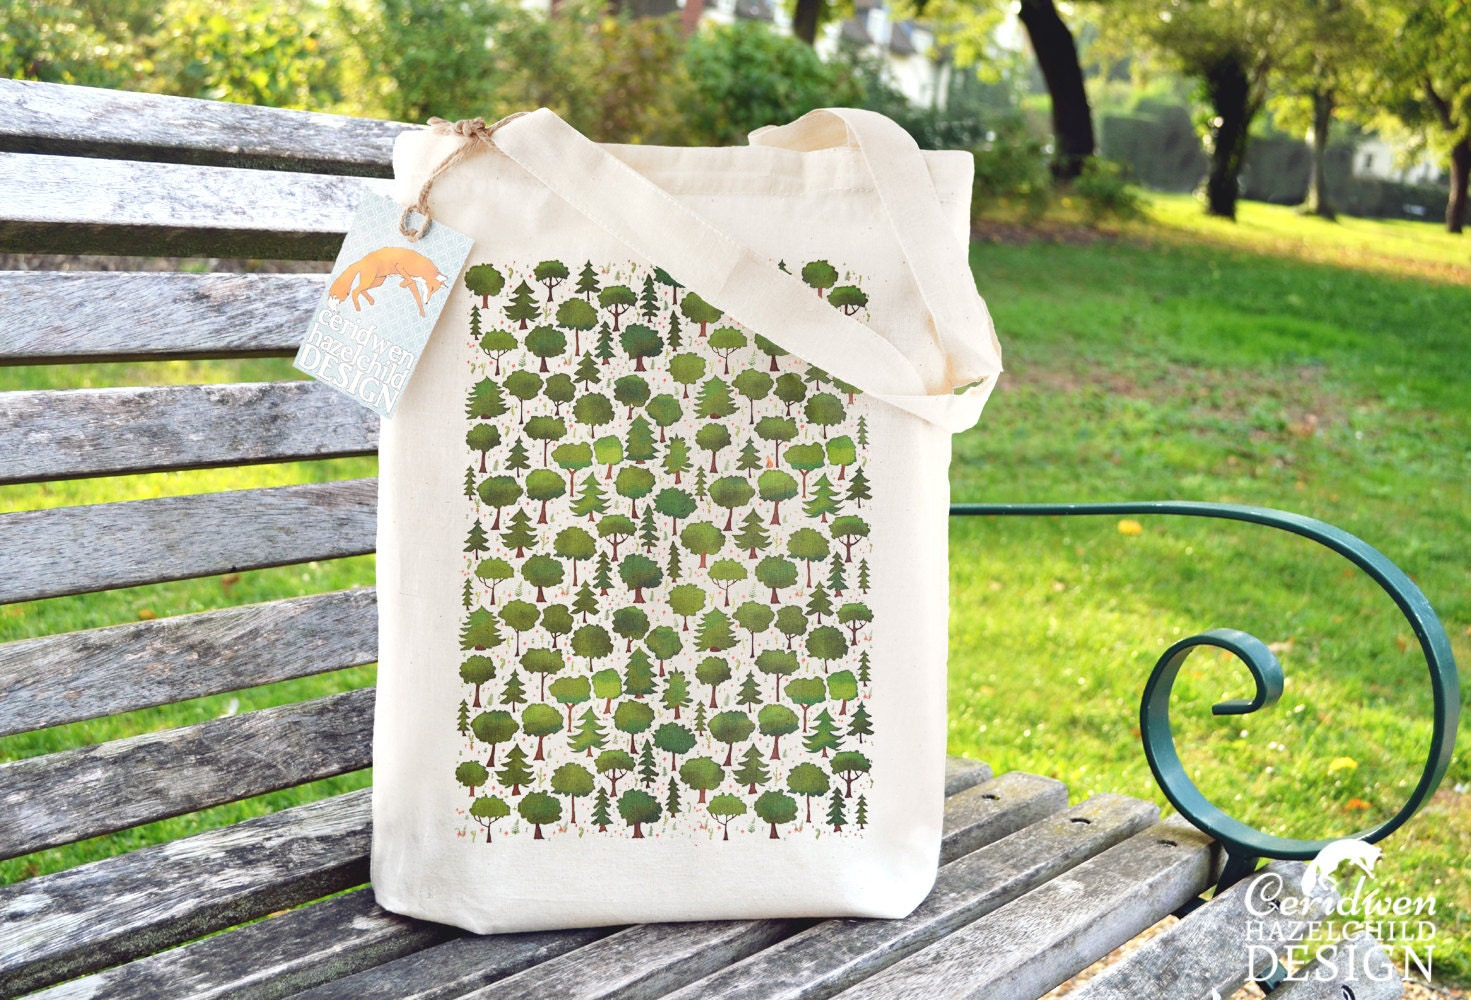 Woodland Trees Tote Bag Reusable Shopper Bag Cotton Tote Ethically Produced Shopping Bag Eco Tote Bag